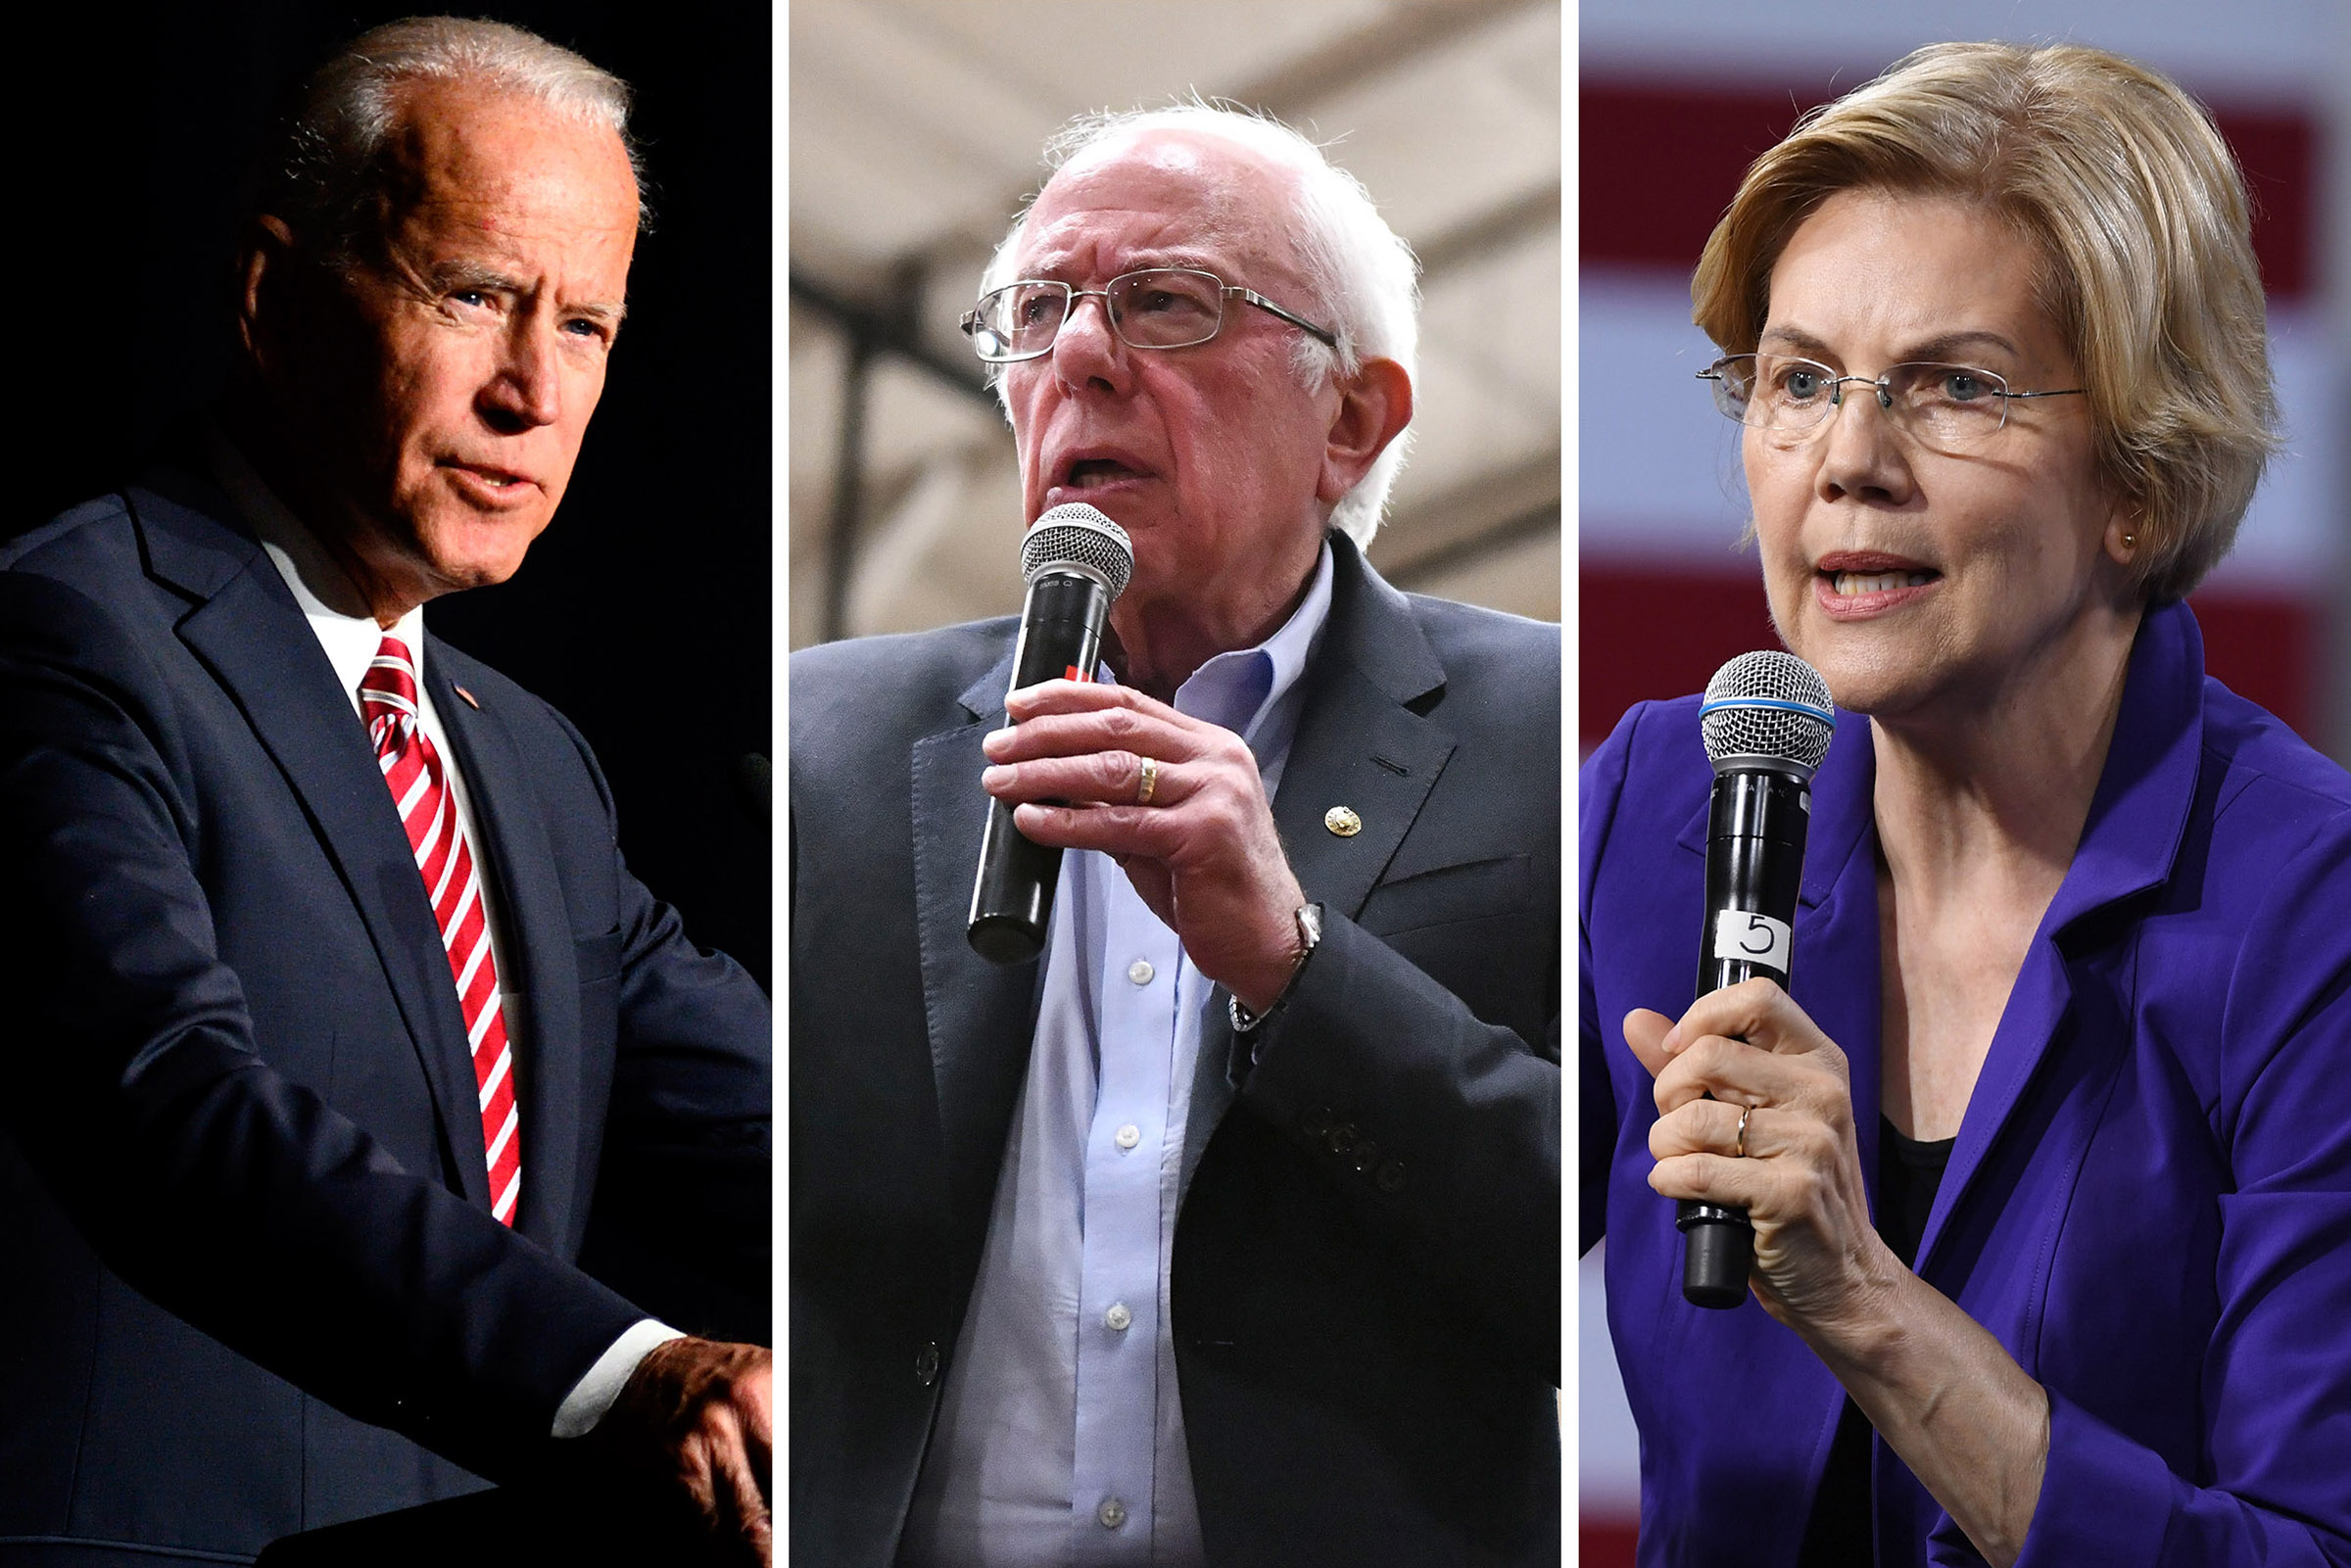 The Democratic Presidential front runners are all in their 70s: Former Vice President Joe Biden,  Sen.  Bernie Sanders (I-VT)  and U.S. Sen. Elizabeth Warren (D-MA)